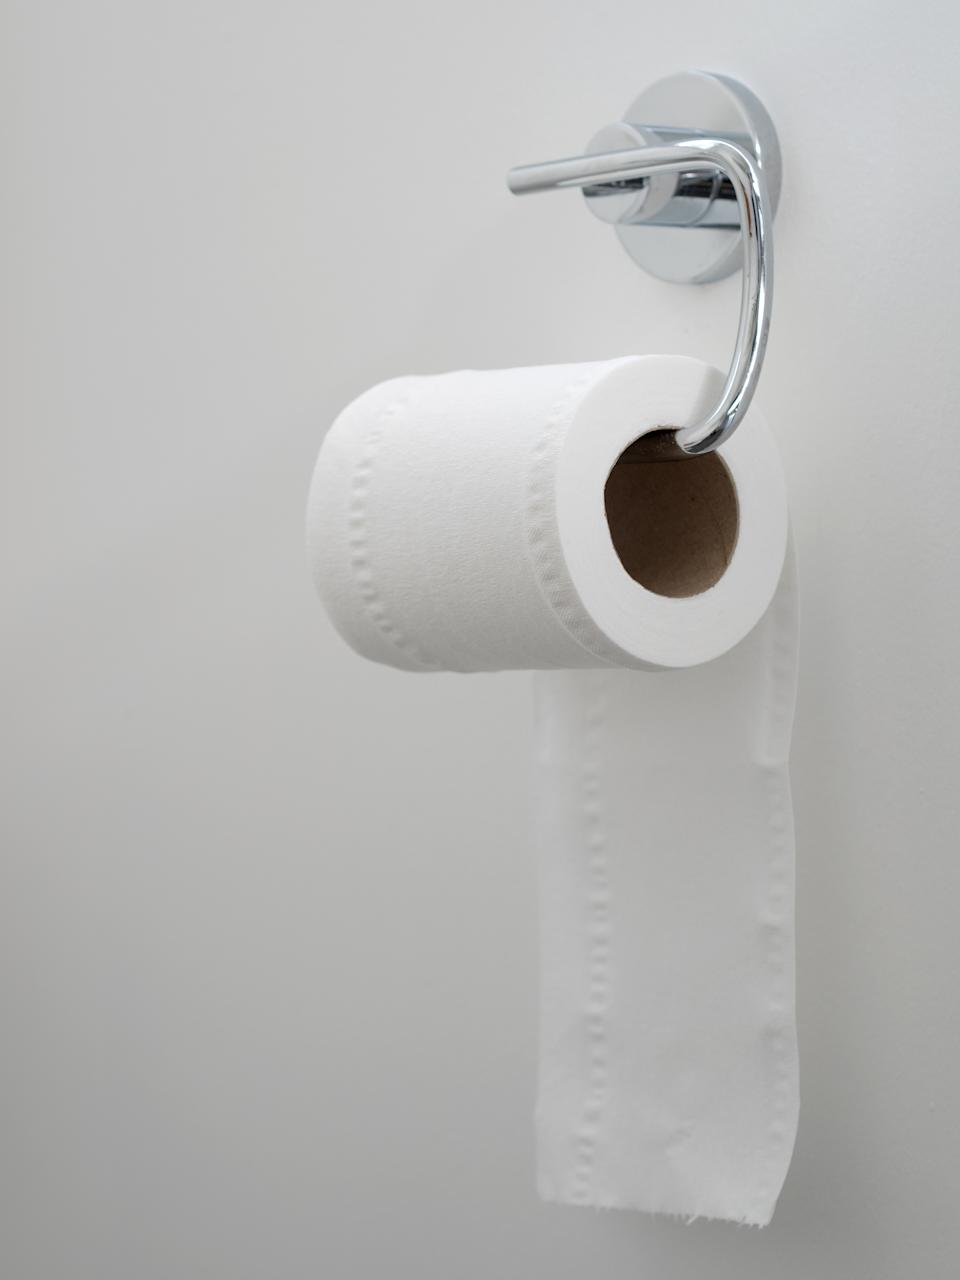 Turns out there's an officially correct way to hang the toilet roll and this isn't it! (Getty Images)